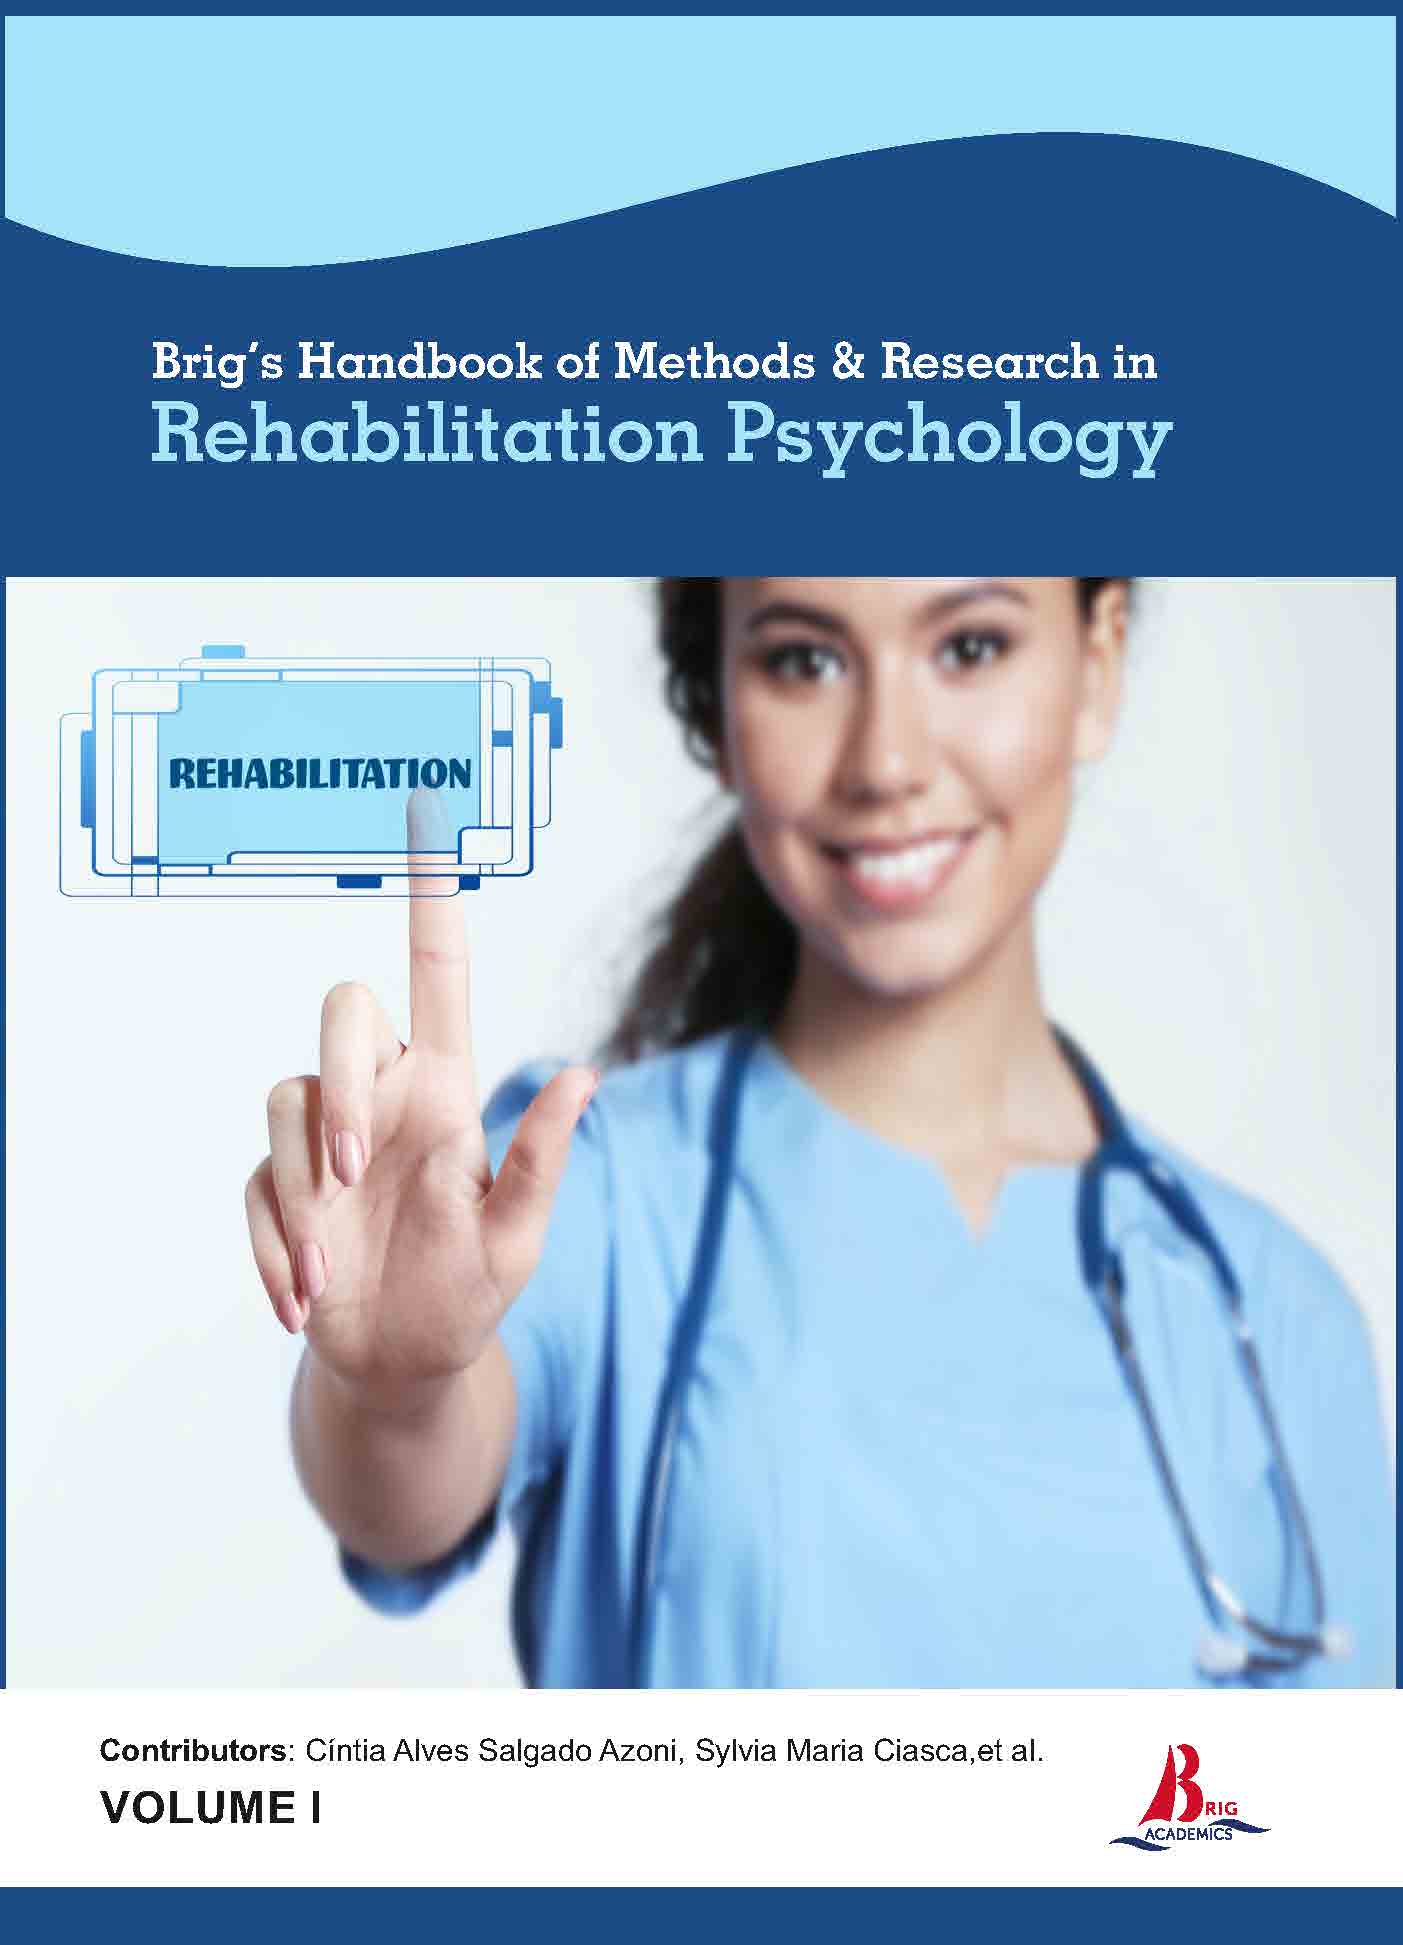 Brig's Handbook of Methods & Research in rehabilitation psychology